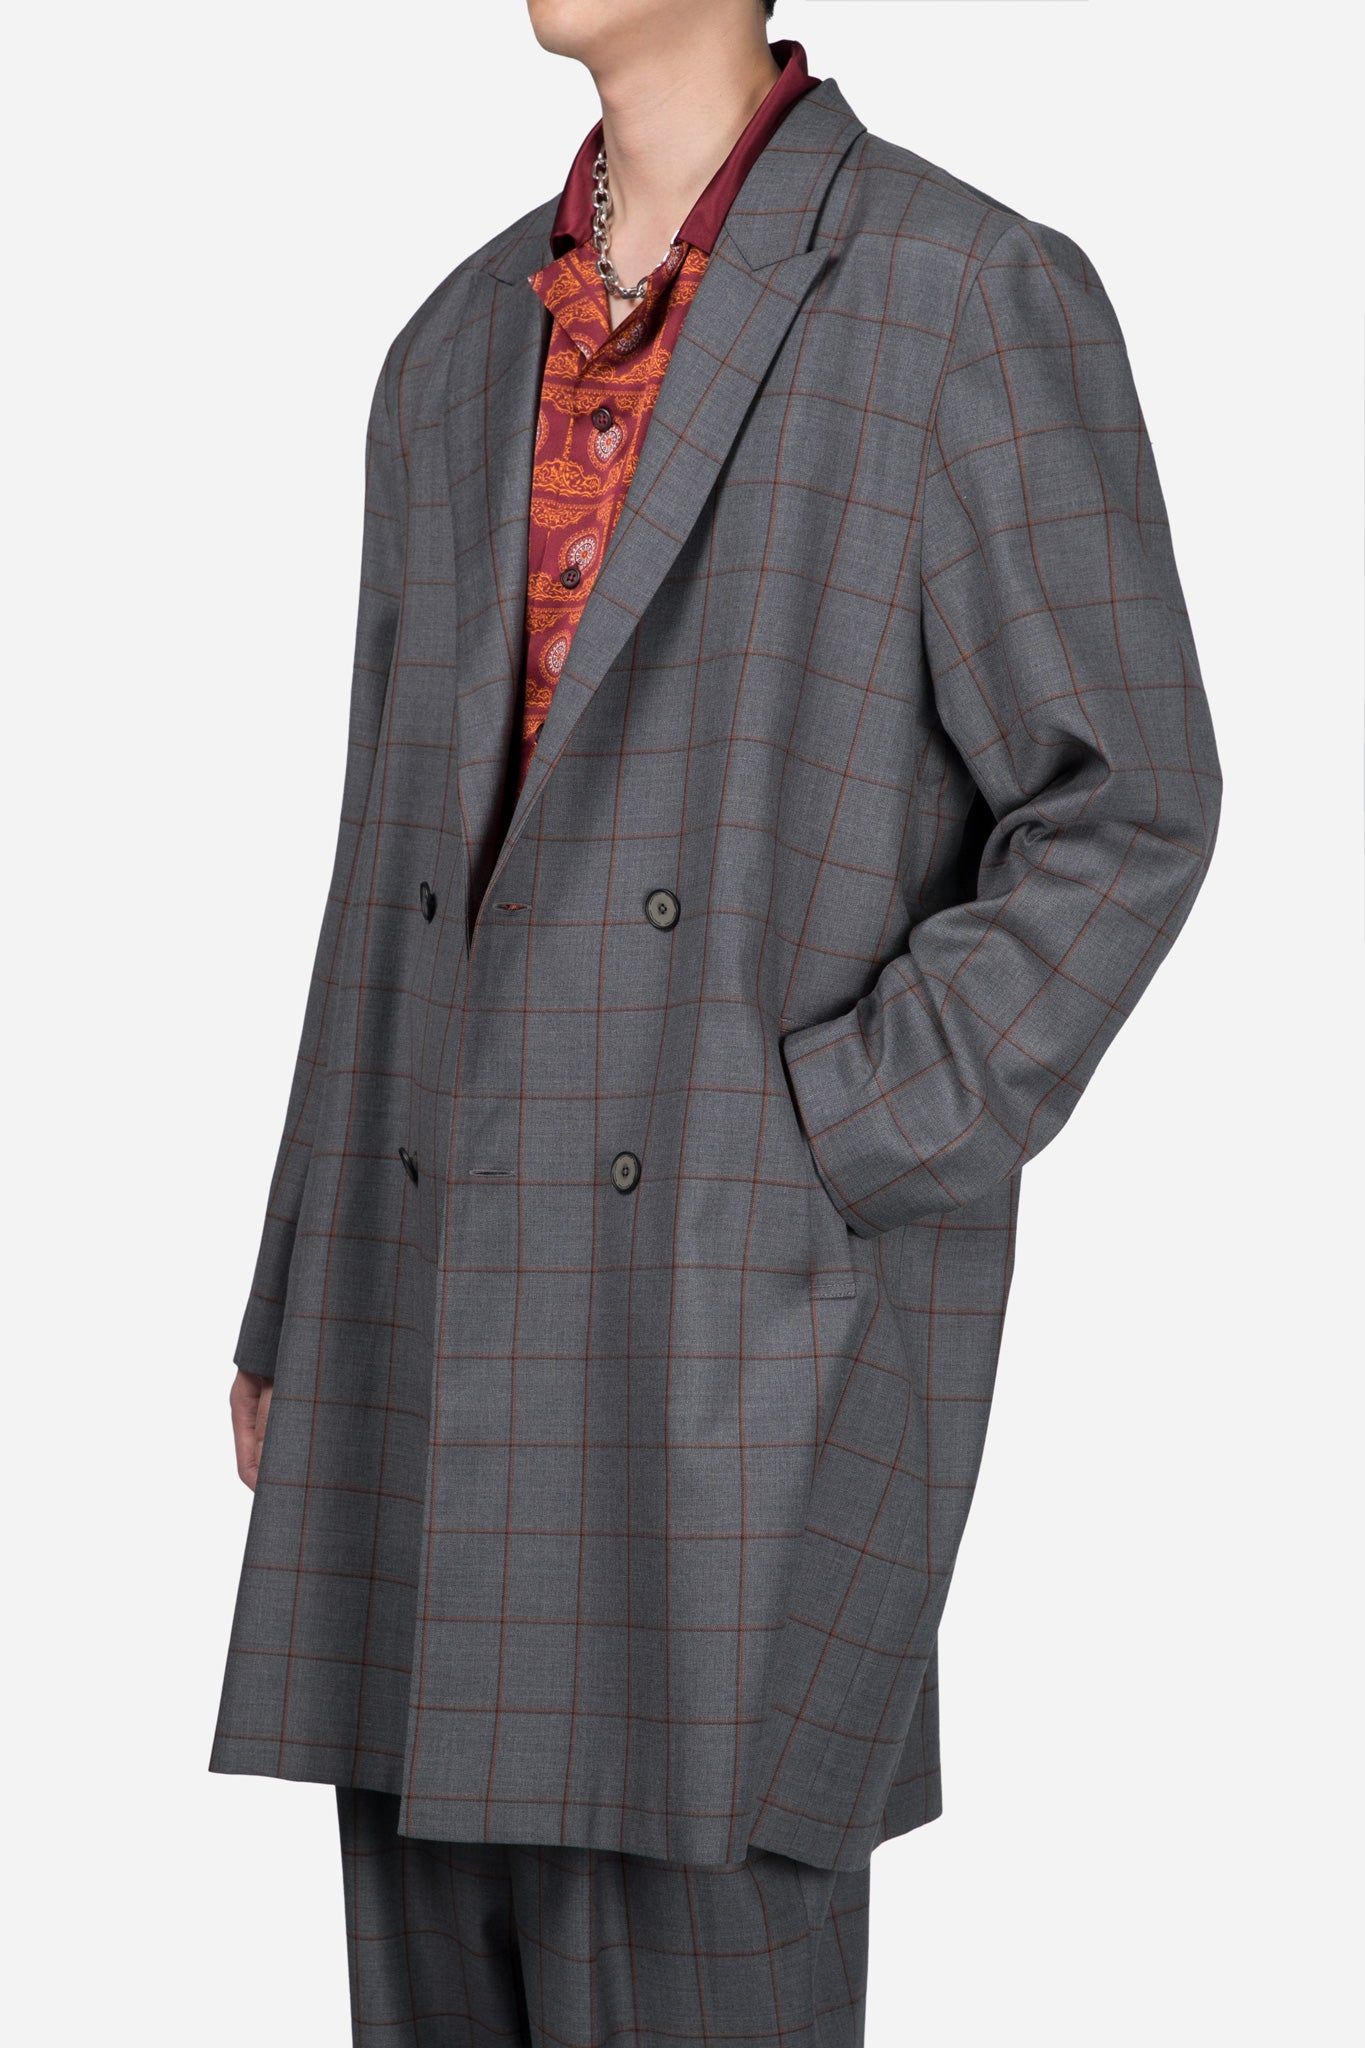 Polar Peak Lapel Double Breast Coat Silver Rust Shadow Grid